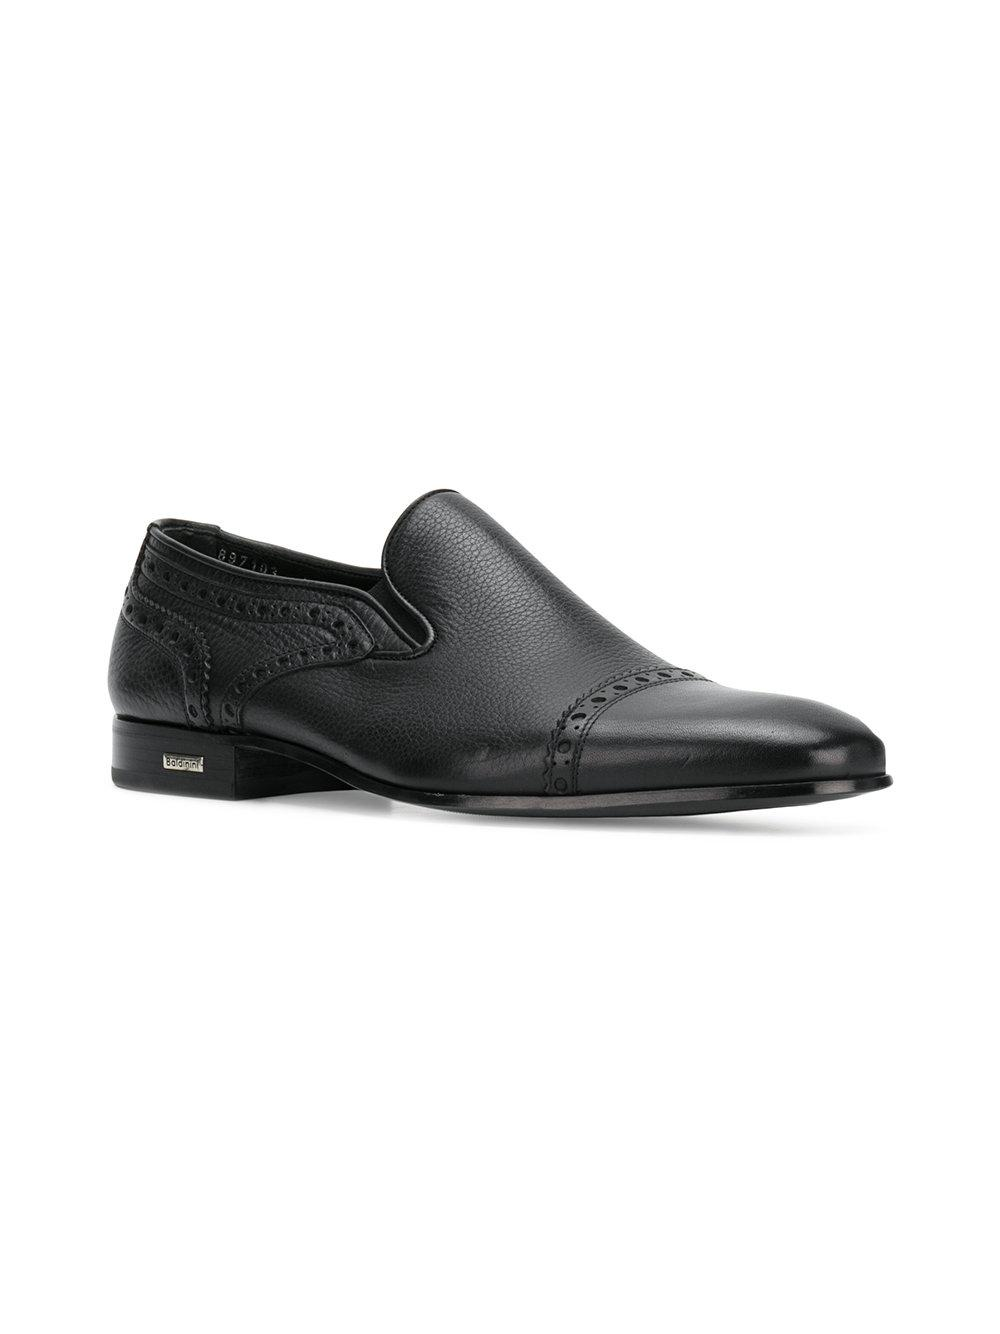 best cheap 5c56e 1bee8 baldinini-Black-Classic-Embroidered-Loafers.jpeg